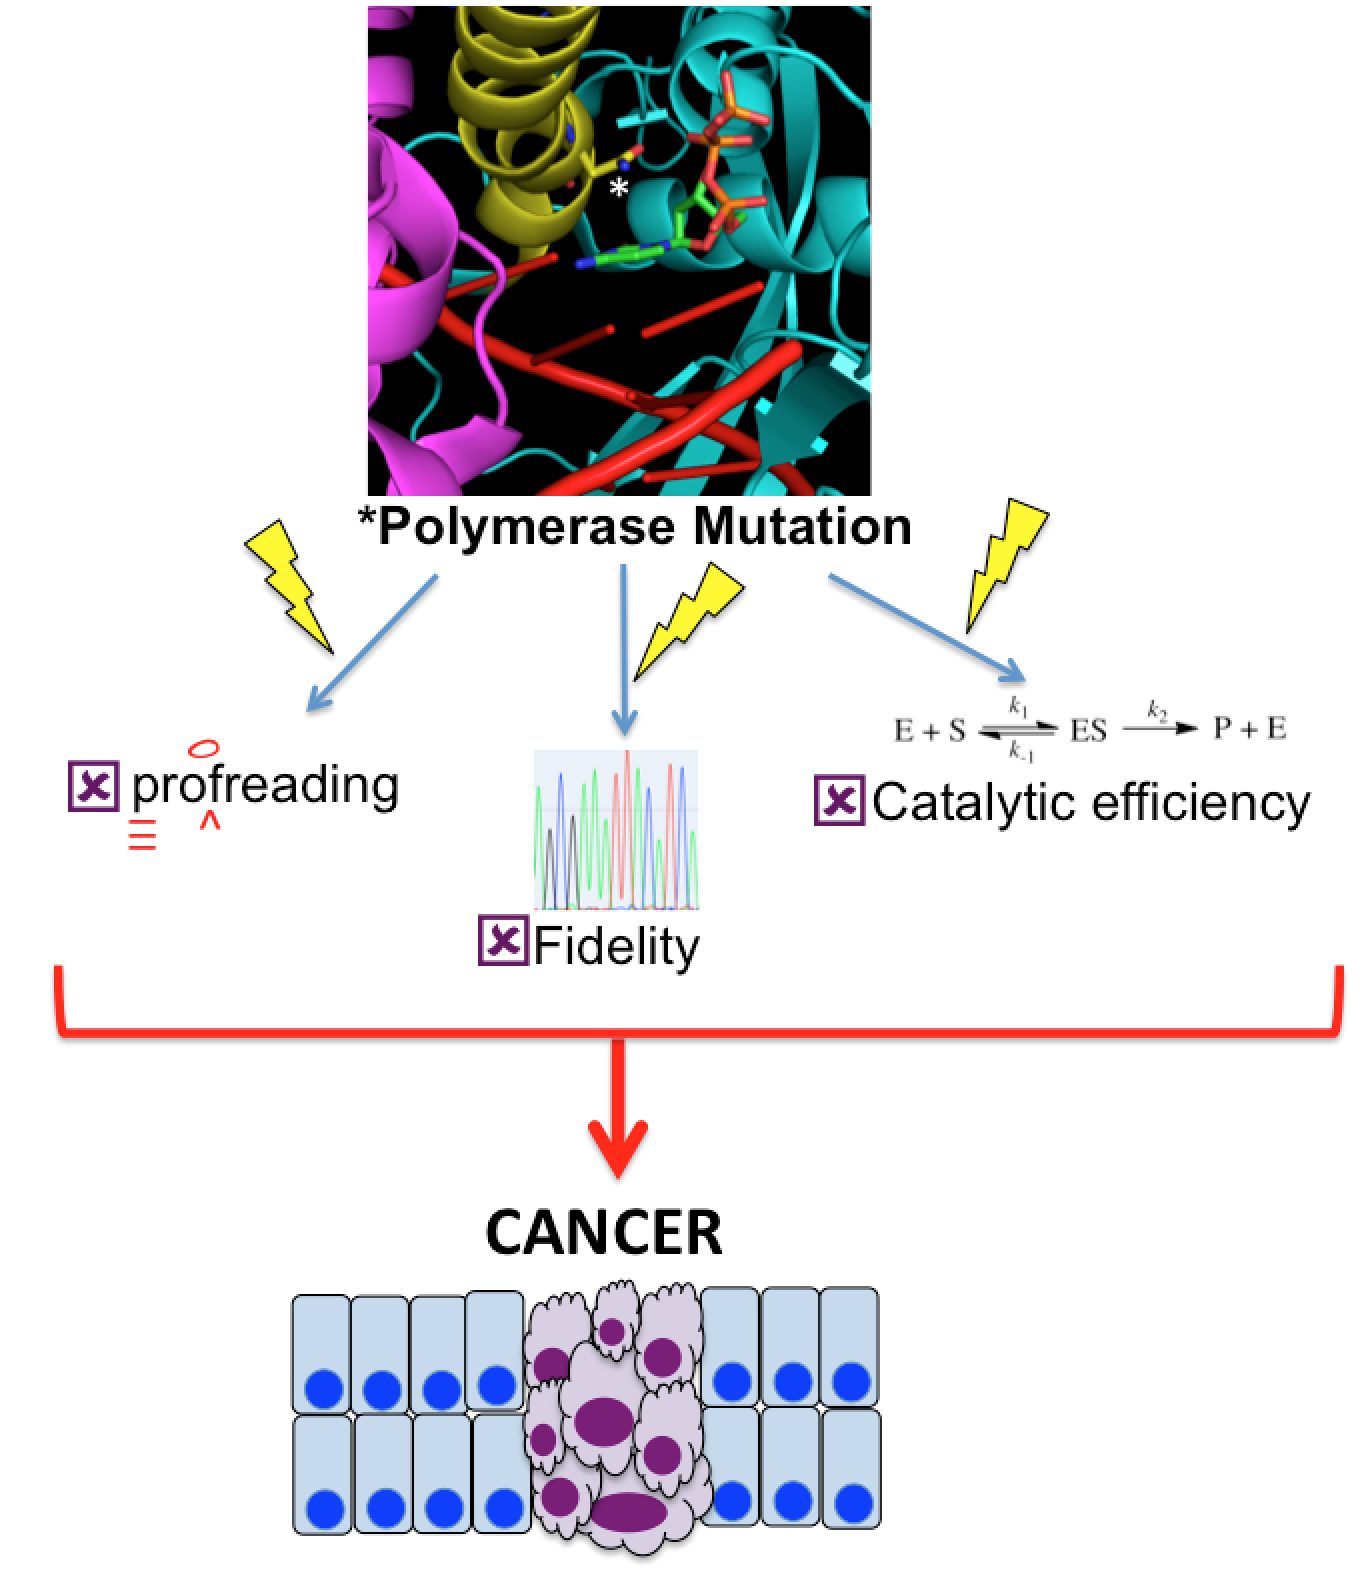 polymerase mutation and cancer